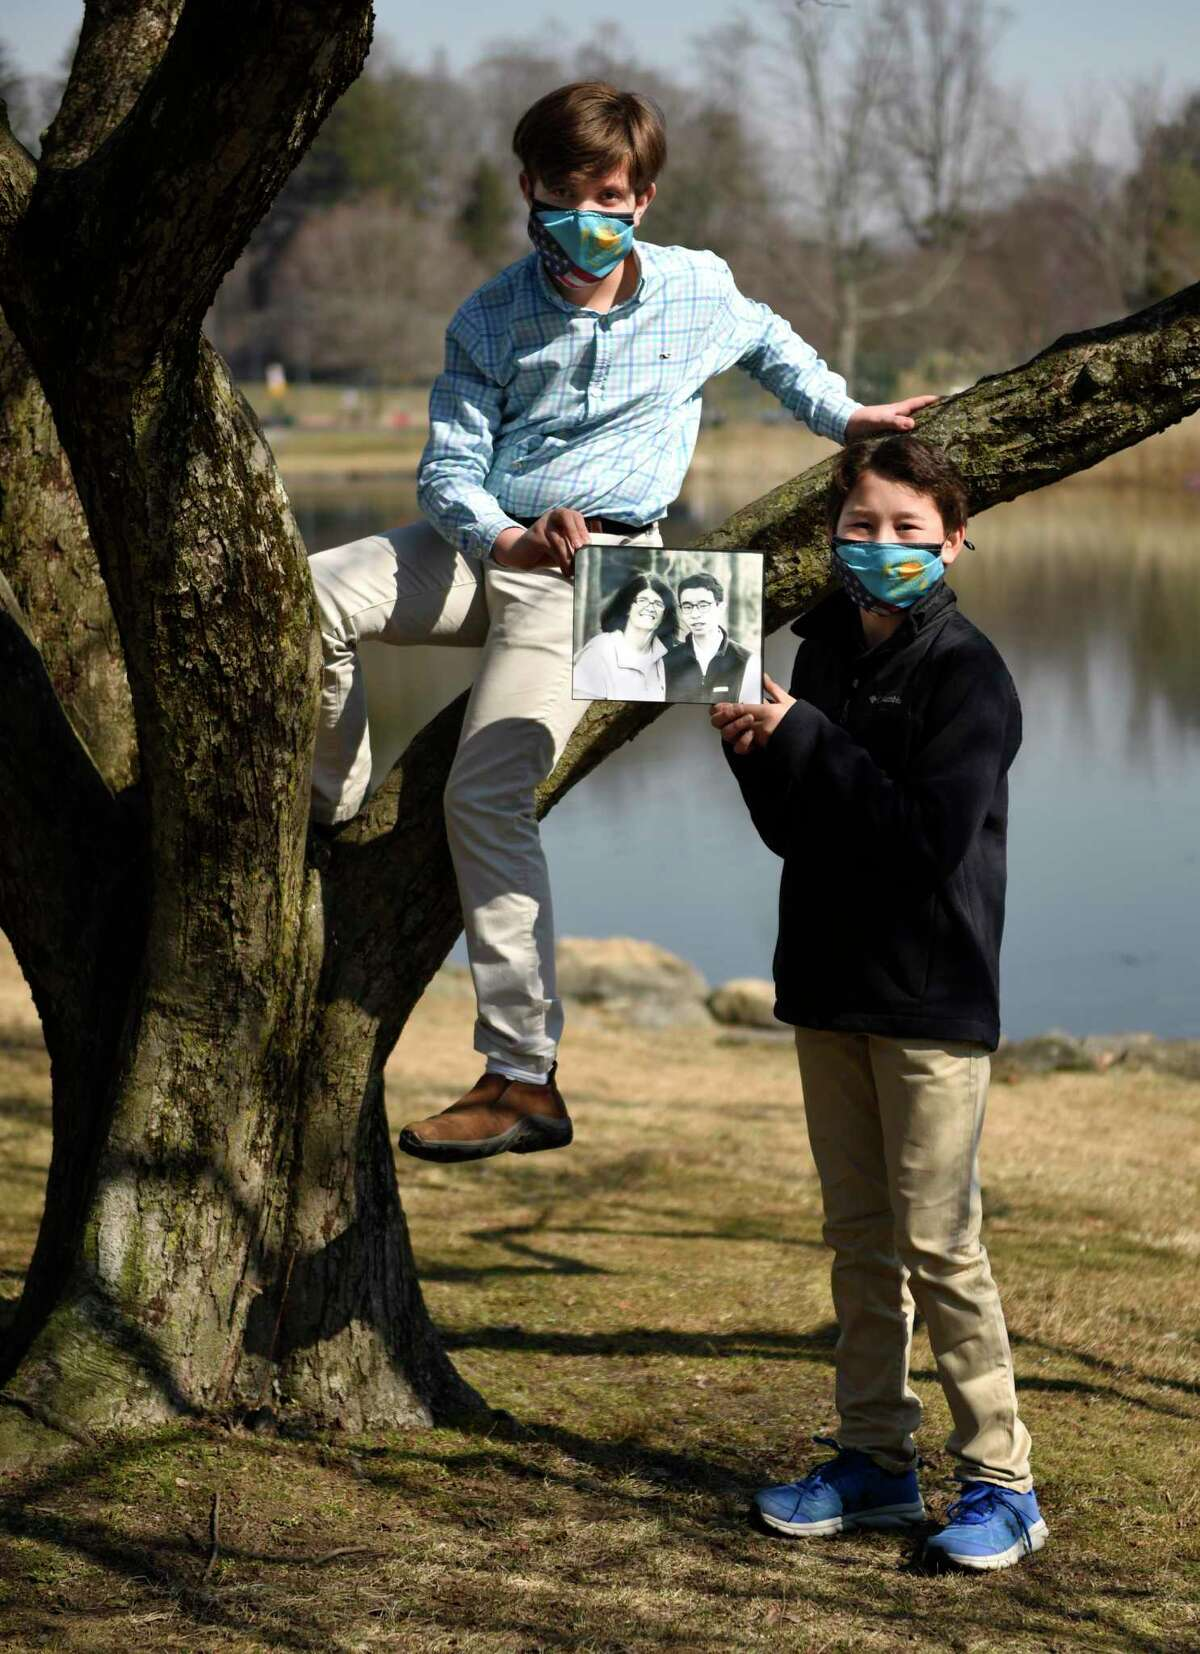 Oliver Vigale, 11, left, and Major Karp, 12, hold a photo of Carolyn Tarpey and her 14-year-old son, Henry, at Bruce Park in Greenwich, Conn. Thursday, March 11, 2021. Tarpey was diagnosed with esophageal cancer three months ago and then contracted COVID-19 in February. Carolyn is currently at Yale New Haven Hospital in a medically induced coma on a ventilator. Her friends started a GoFundMe campaign that has raised close to $100,000 to support the costs of her medical care and her 14-year-old son, Henry.